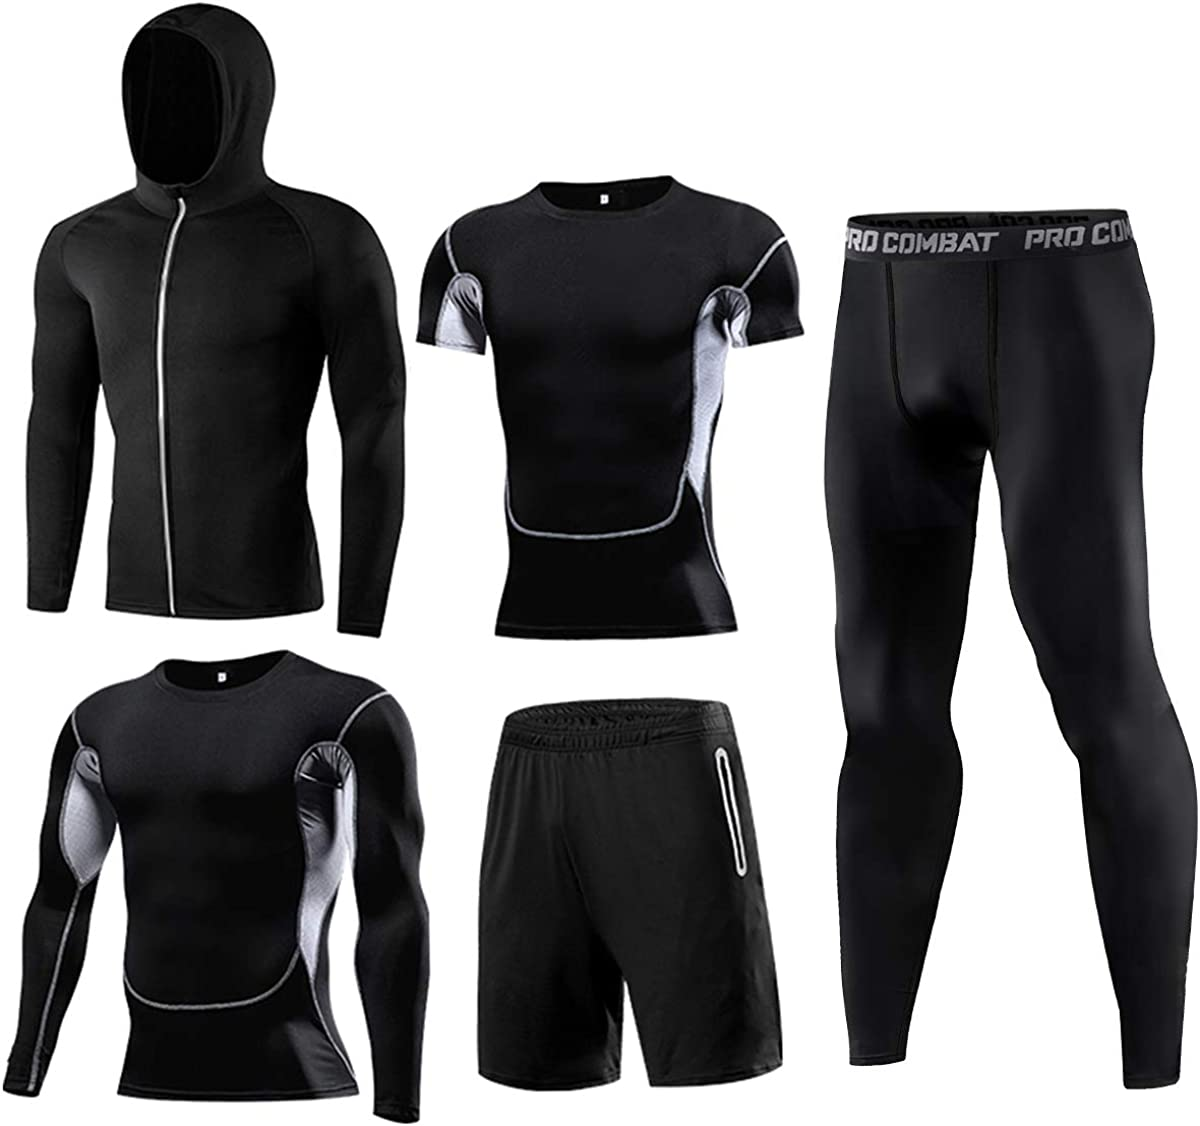 Brand Cheap Sale Venue WELLGEAR Men's Gym Running Fitness Me Kit Compression for Financial sales sale Shirts